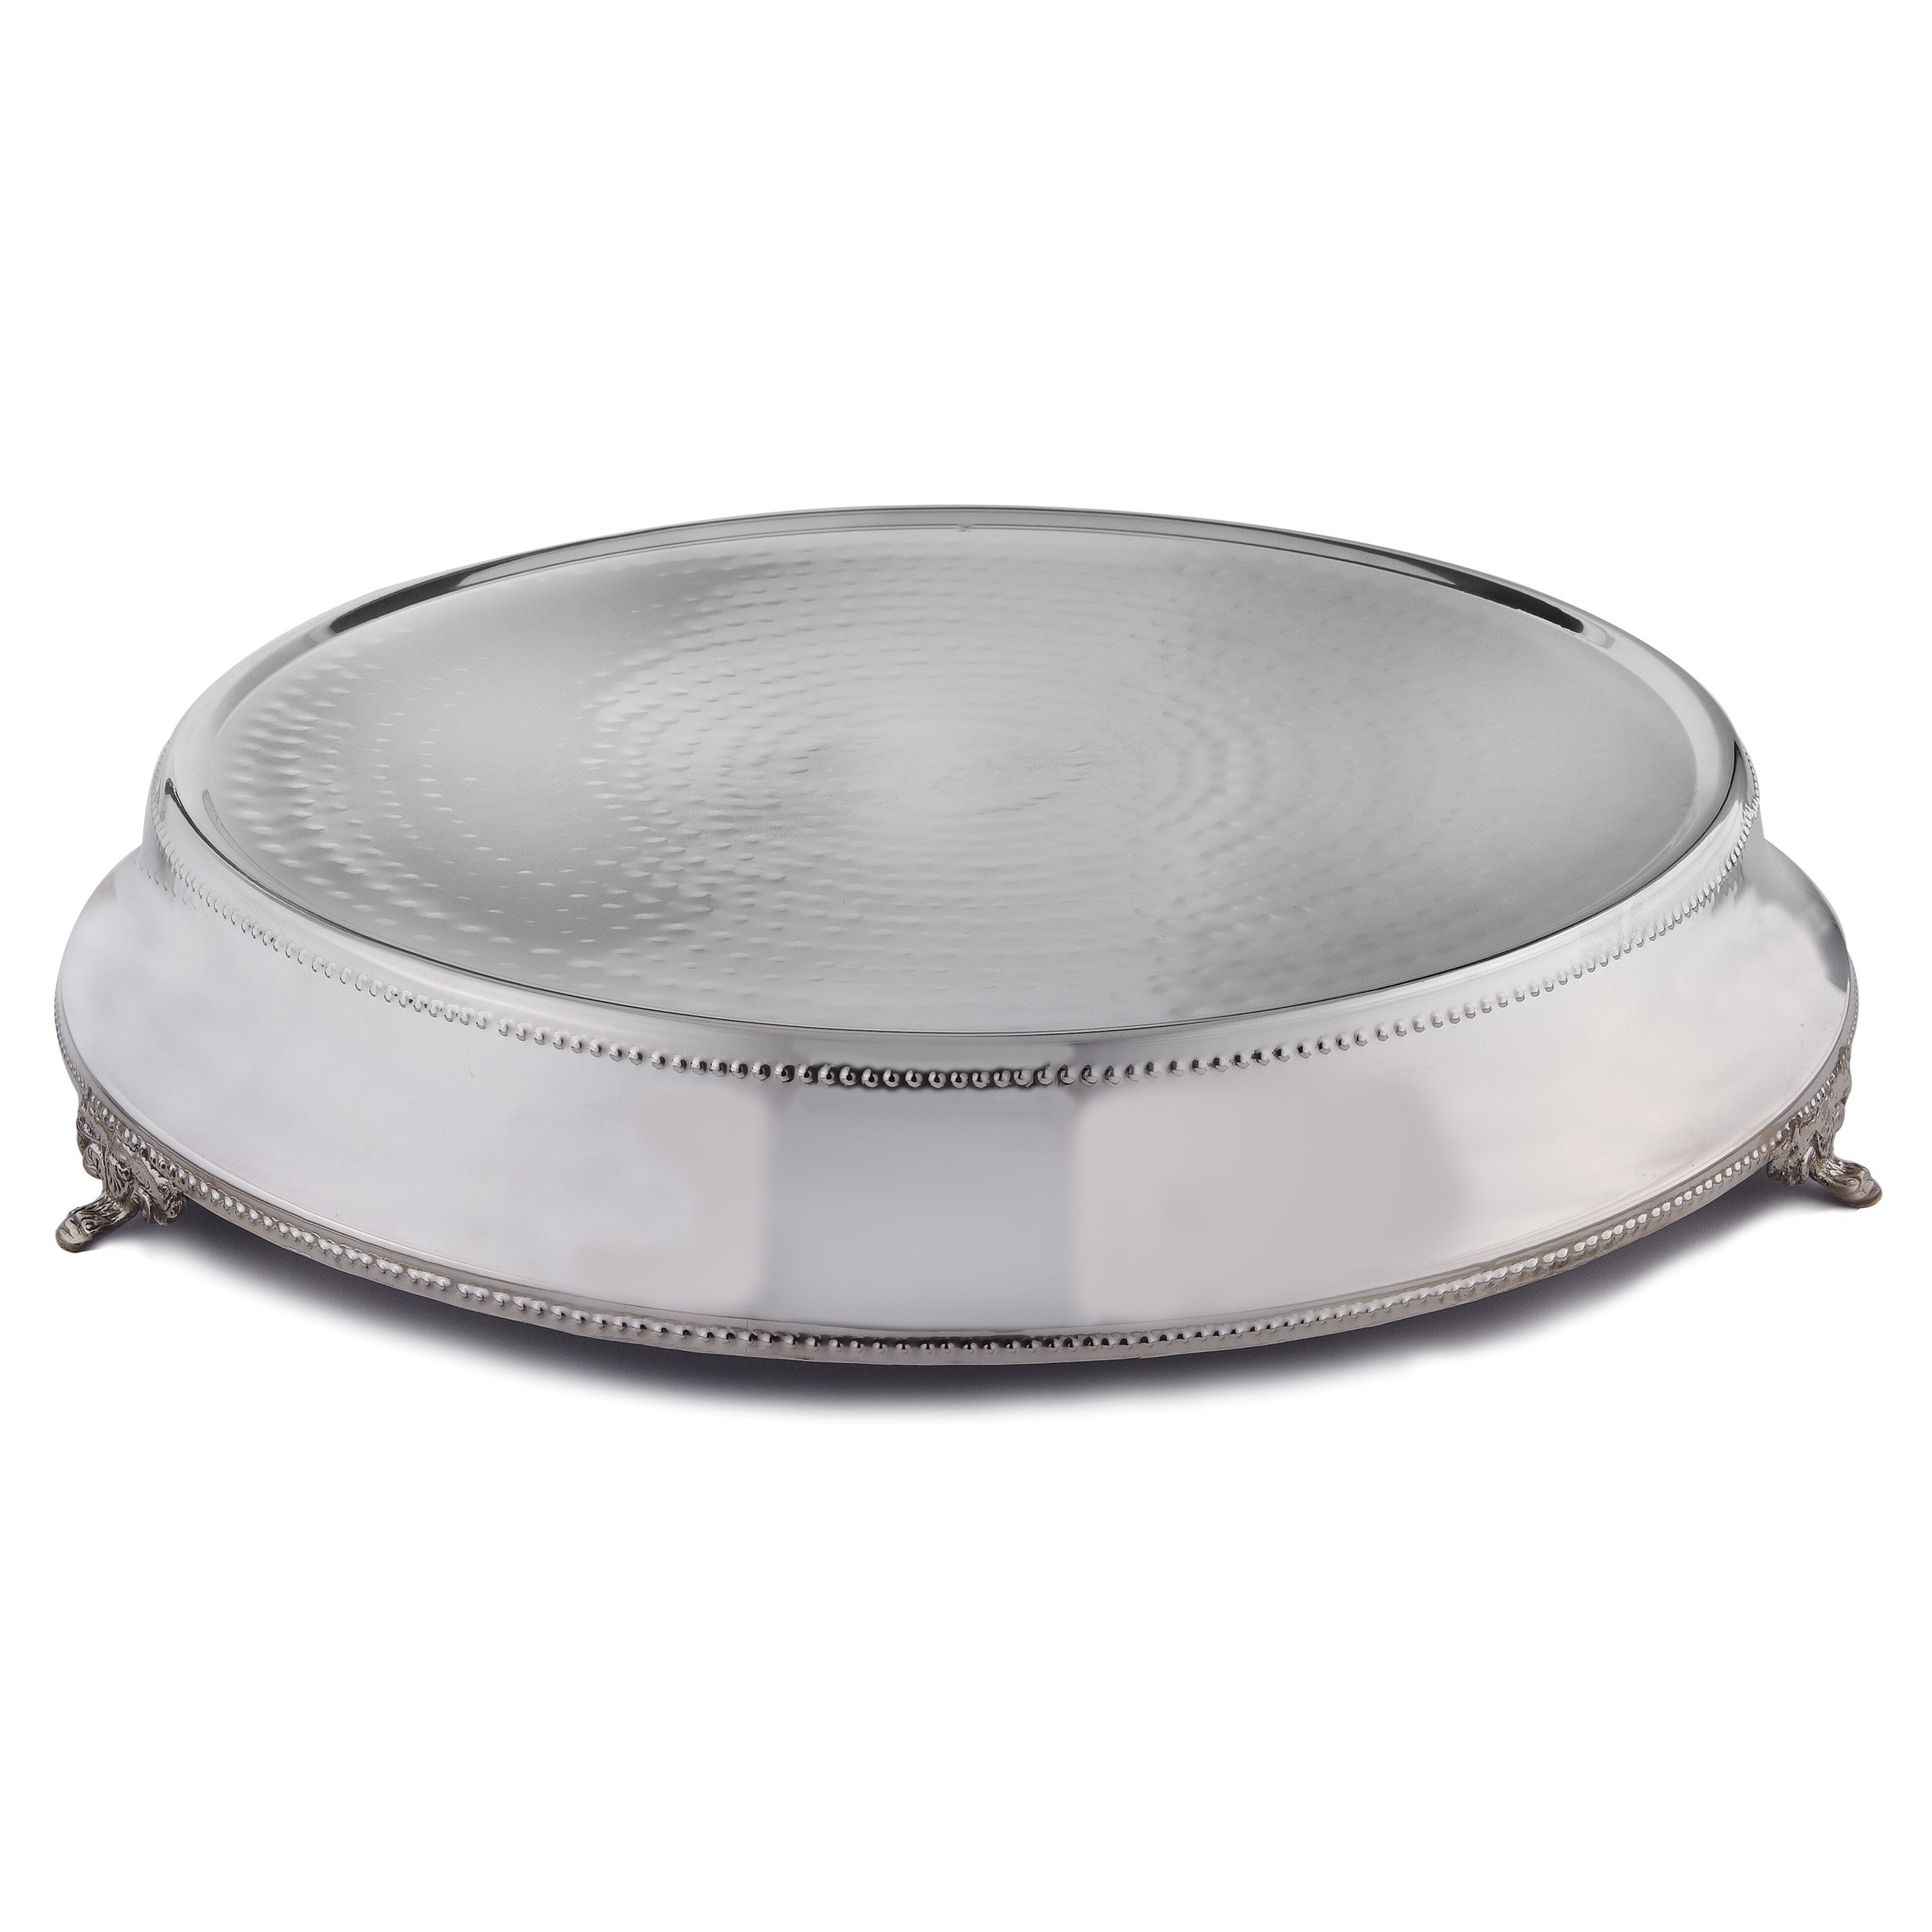 Elegance Round Tapered Wedding Cake Stand/Plateau, Silver Color, 18-Inch